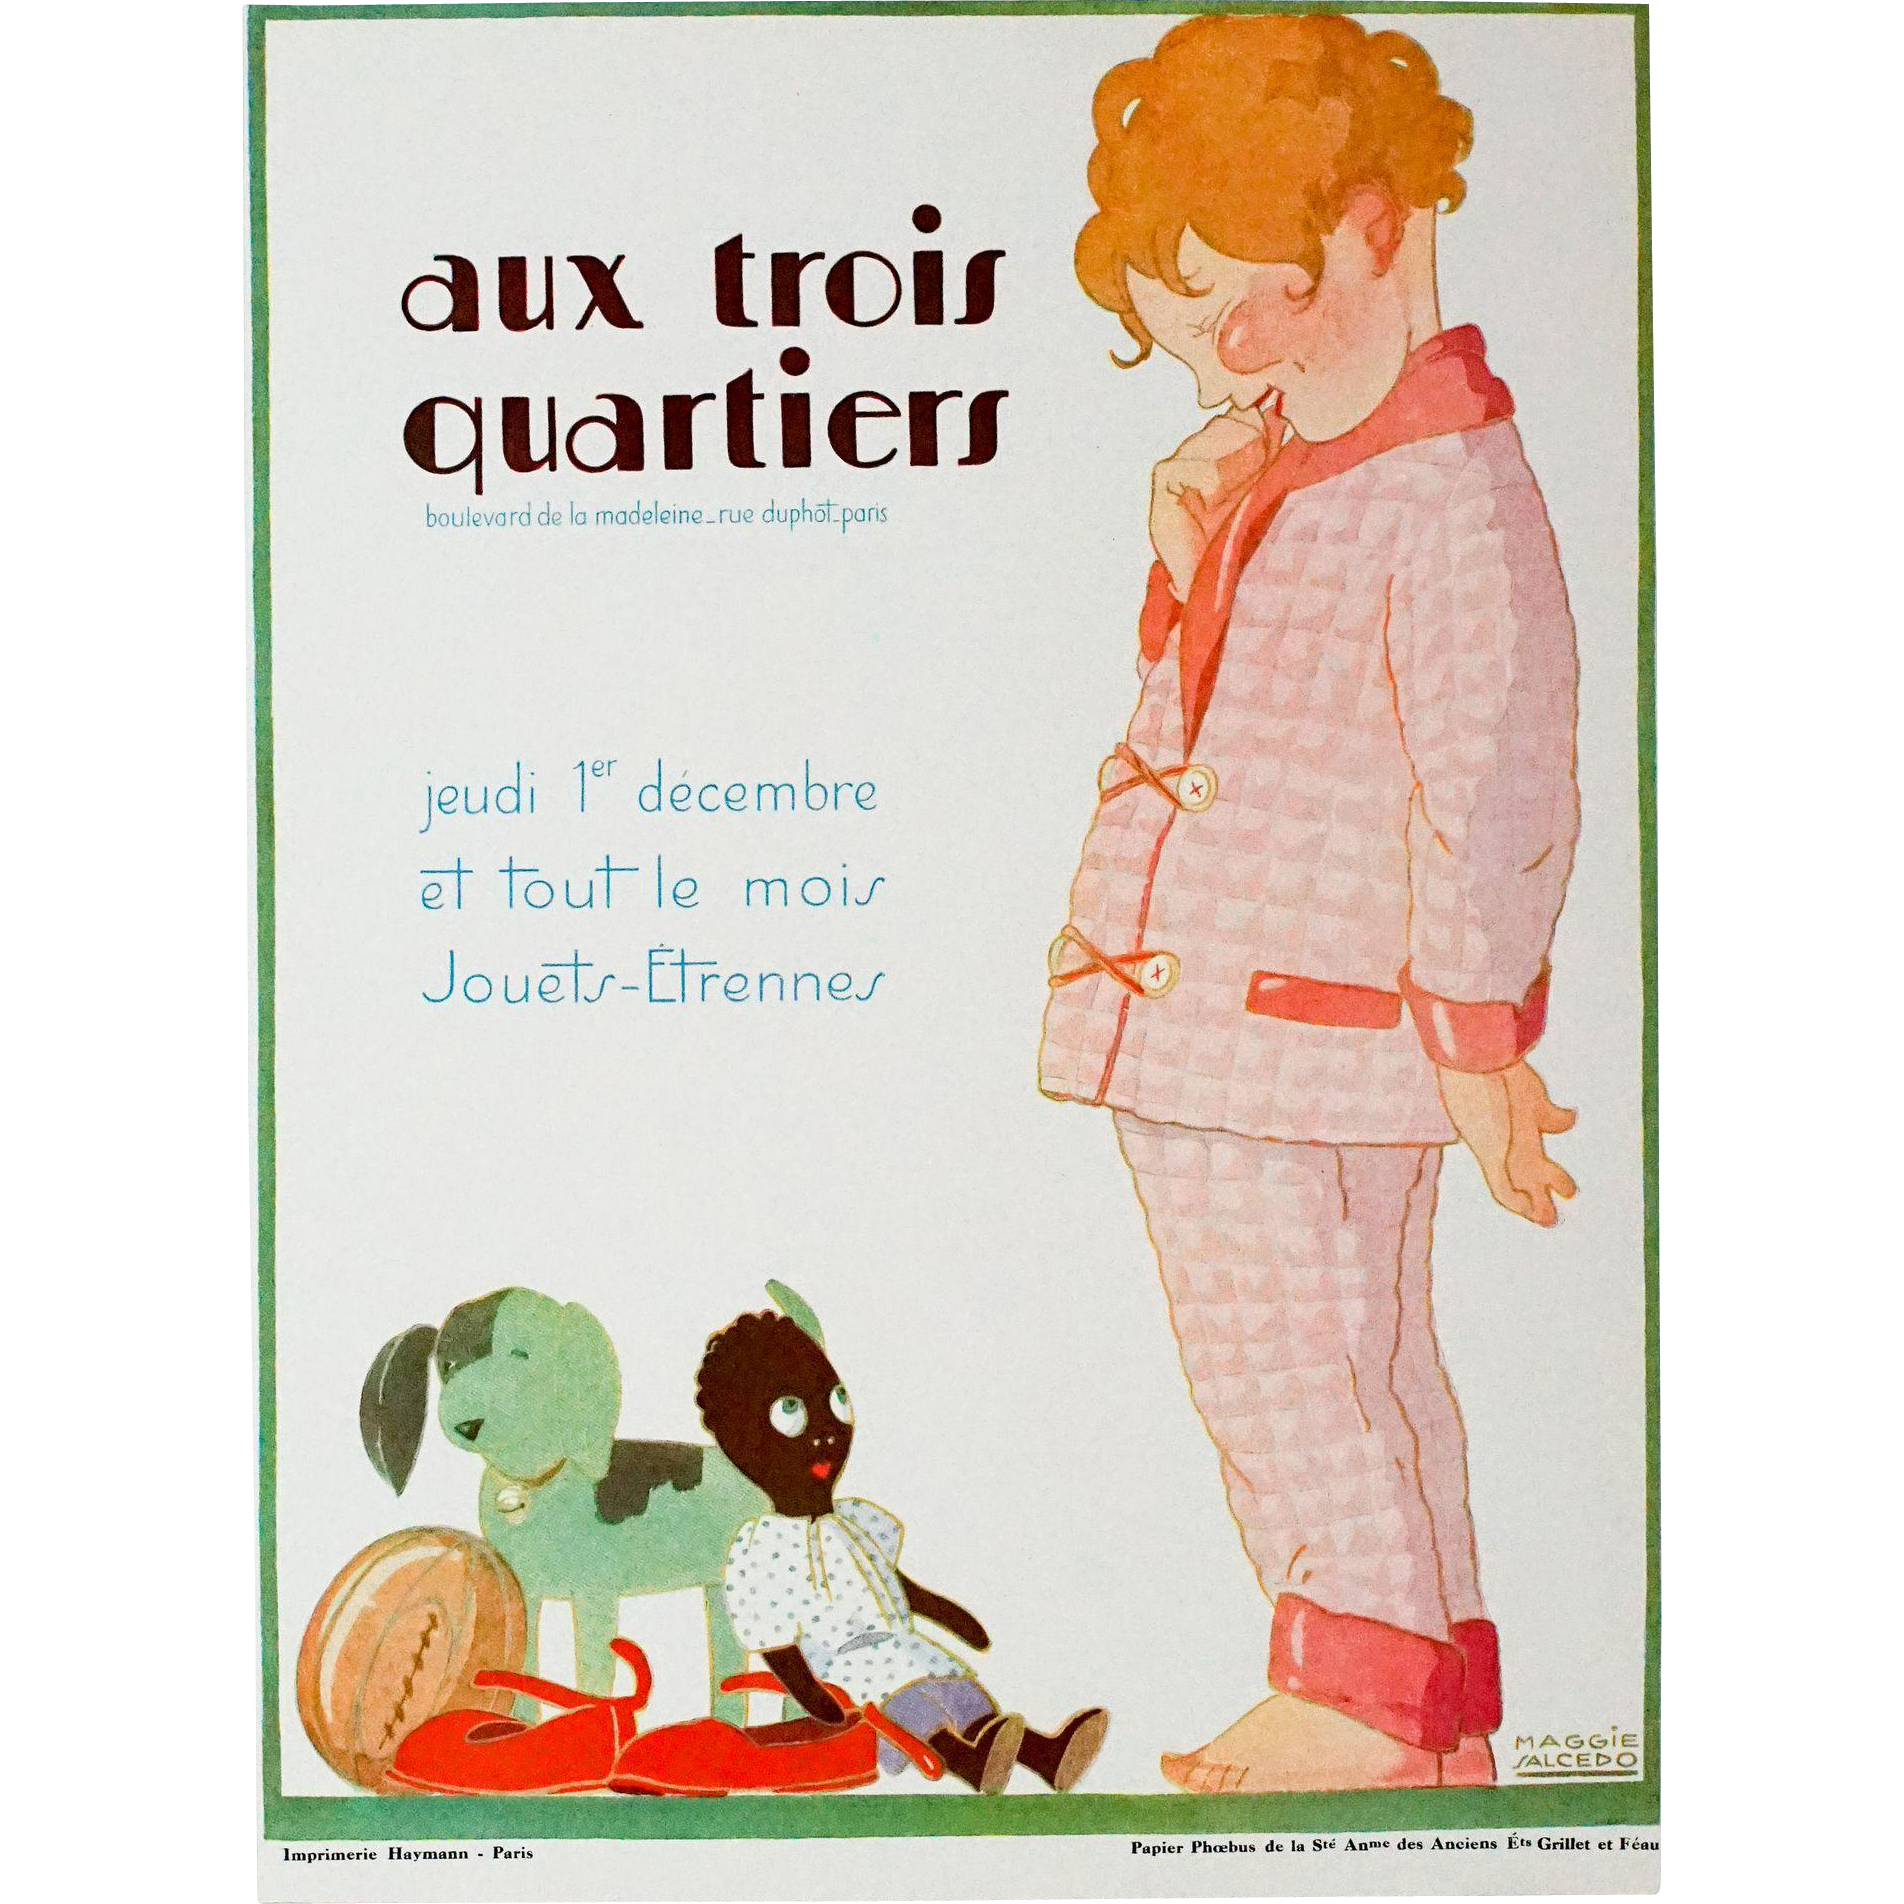 Vintage Art Deco Graphic, Aux Trois Quartiers, Signed Maggie Saucedo, Paris